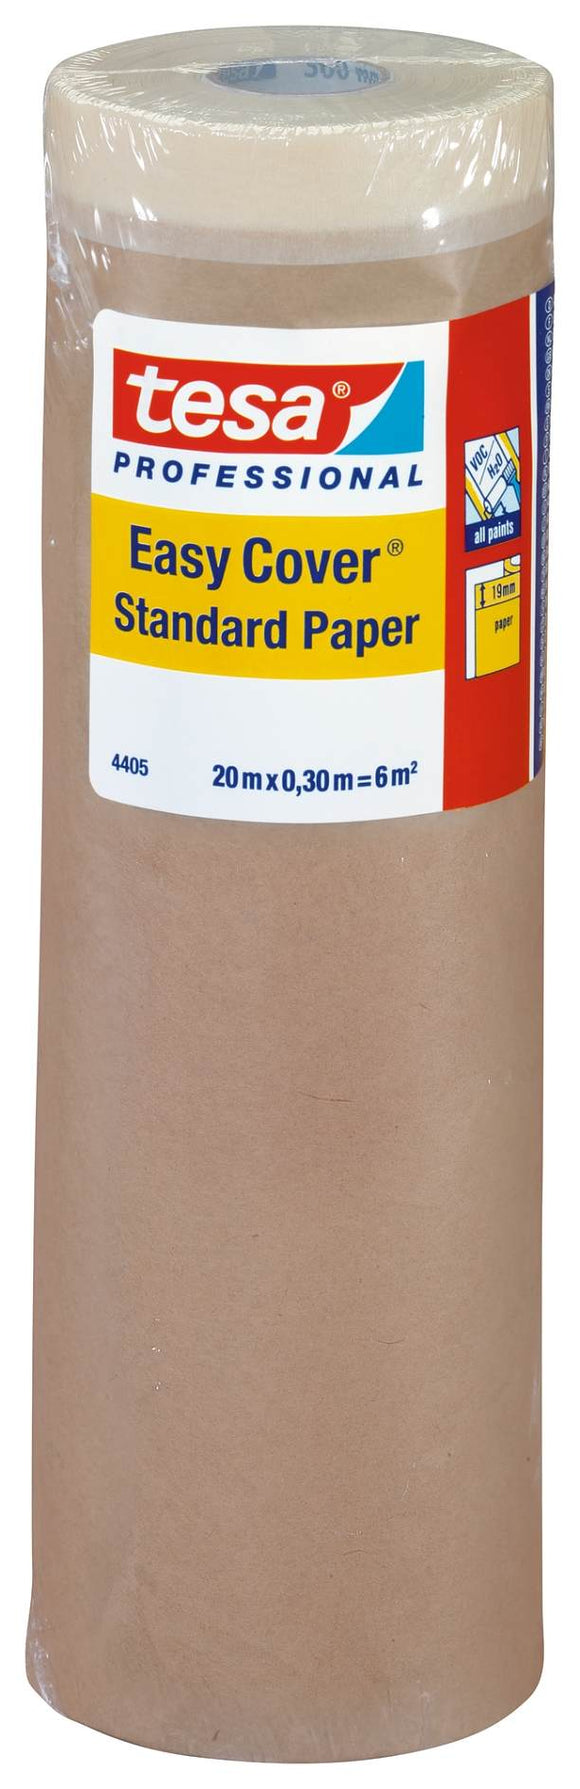 tesa® Professional 4405 Easy Cover® Standard Paper